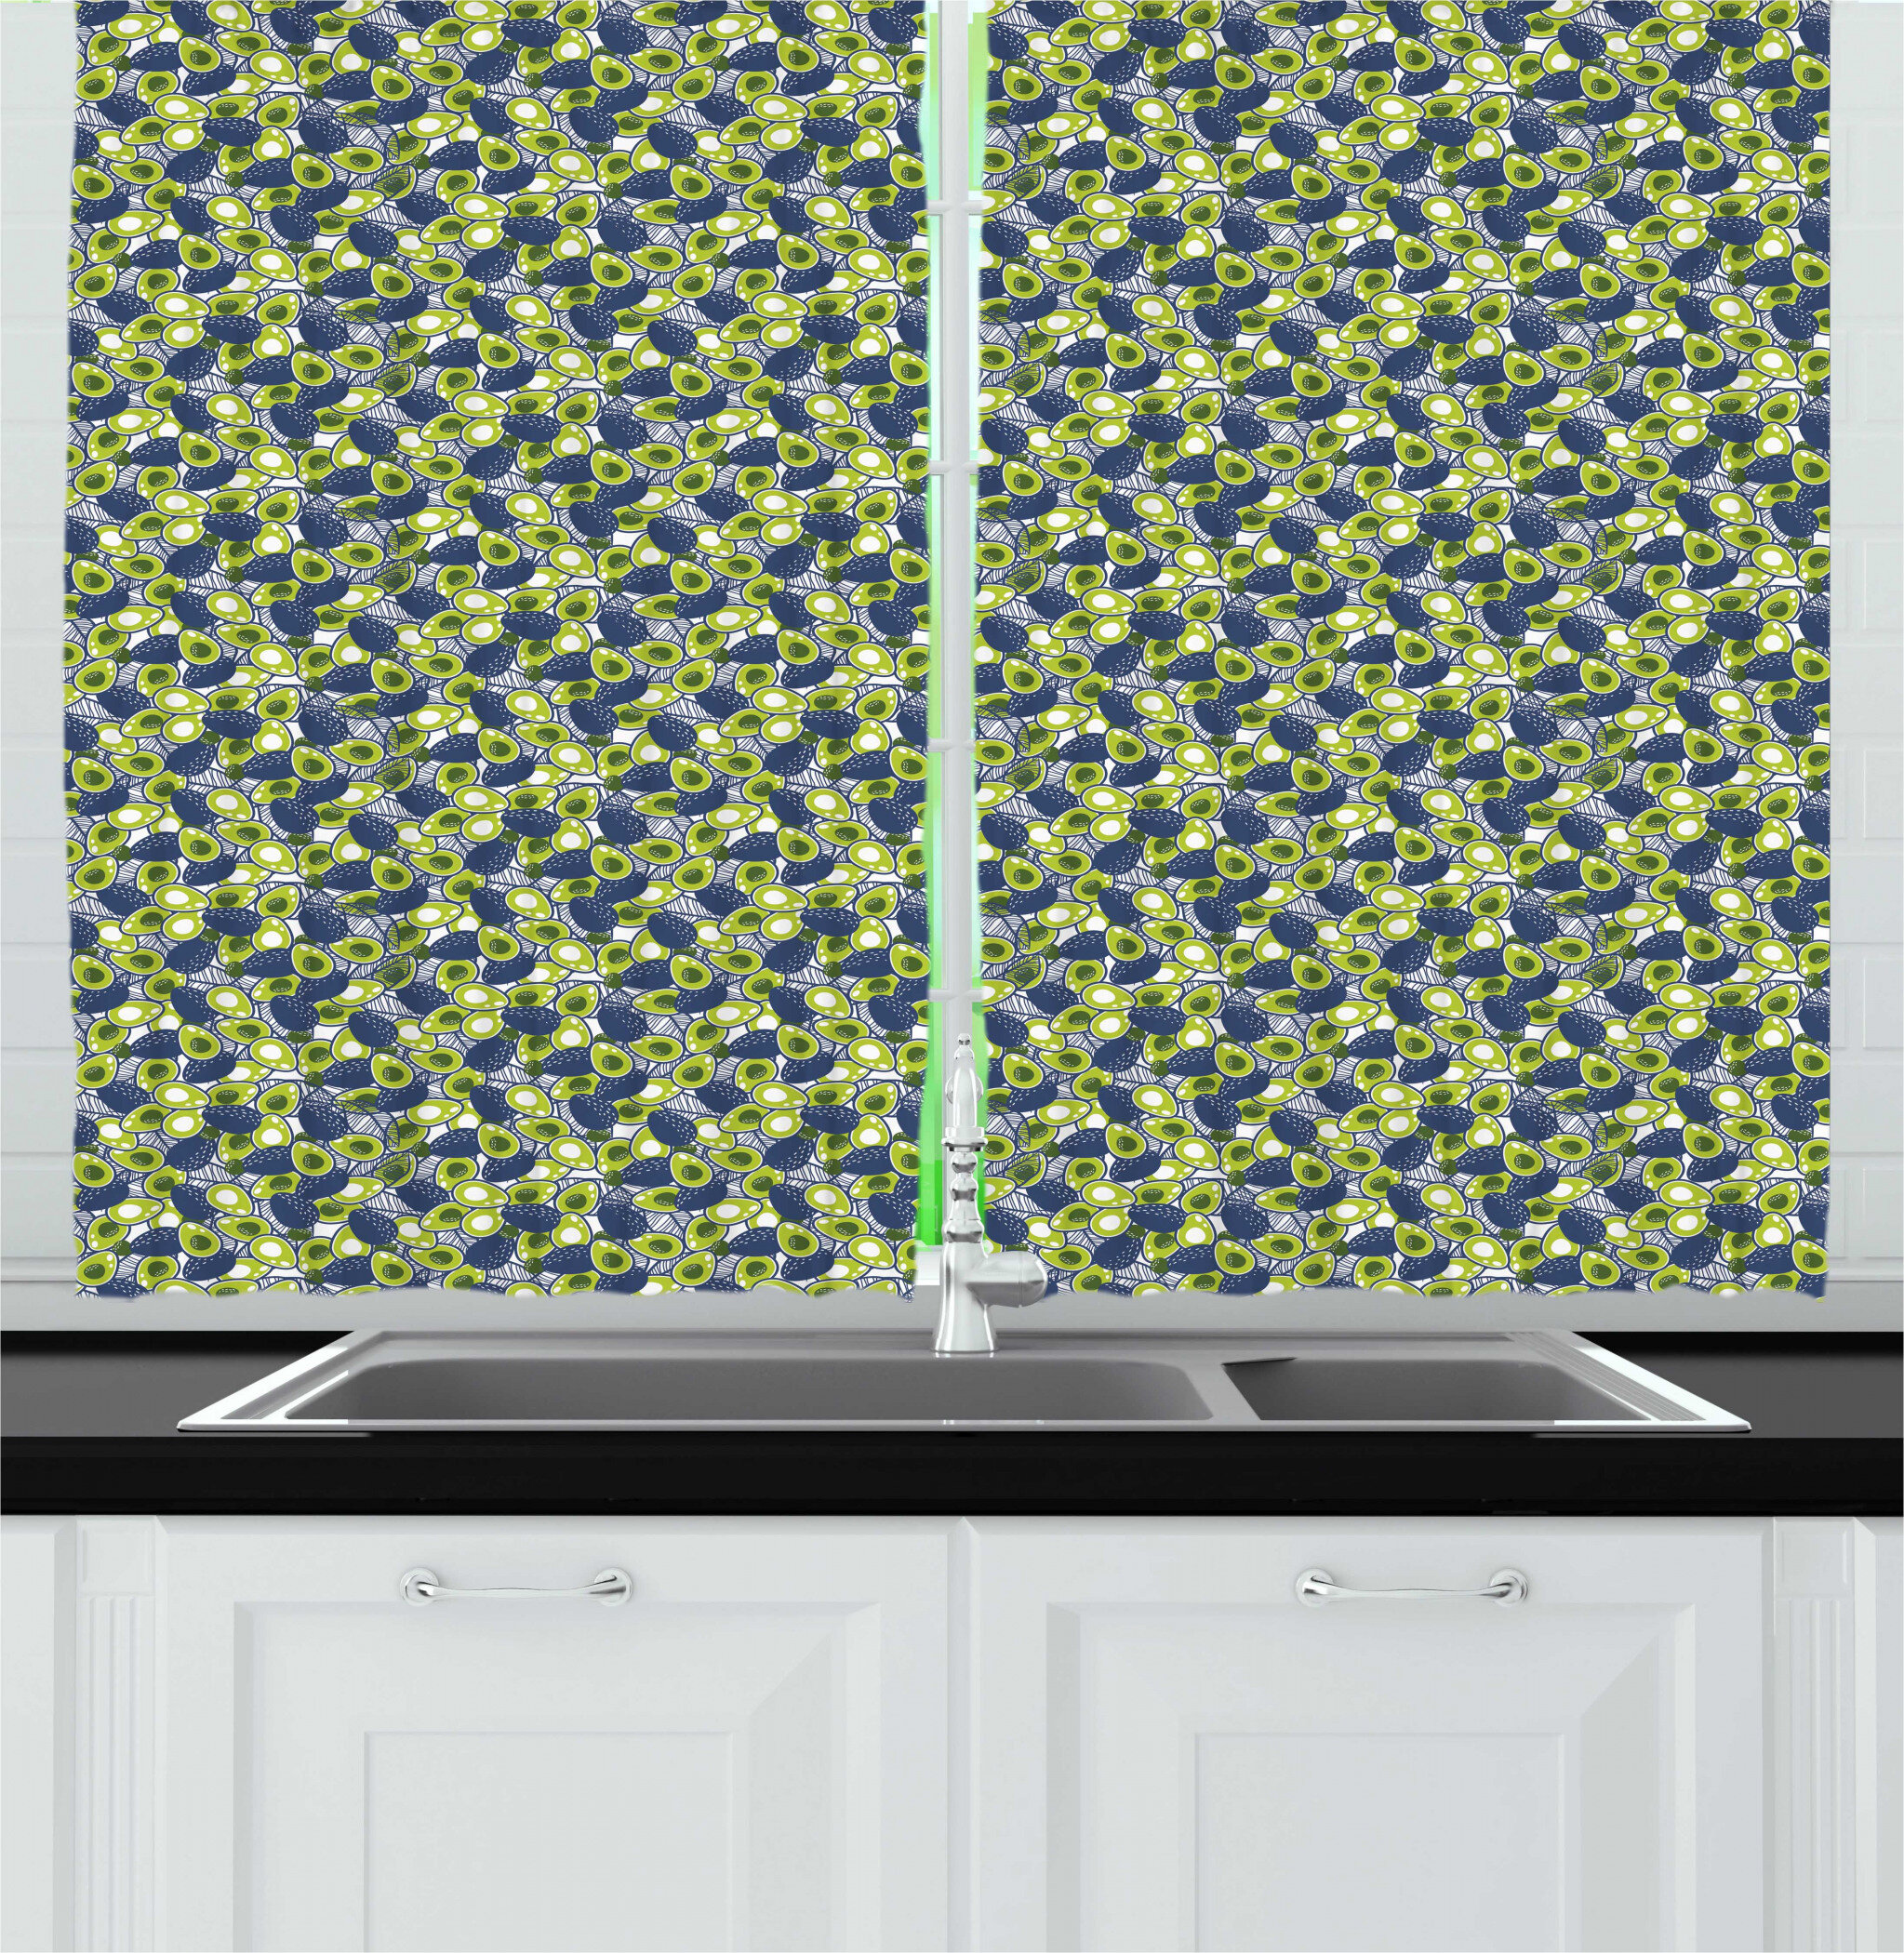 East Urban Home 2 Piece Avocado Repeating Sliced And Whole Organic Healthy Fruit Kitchen Curtain Set Wayfair